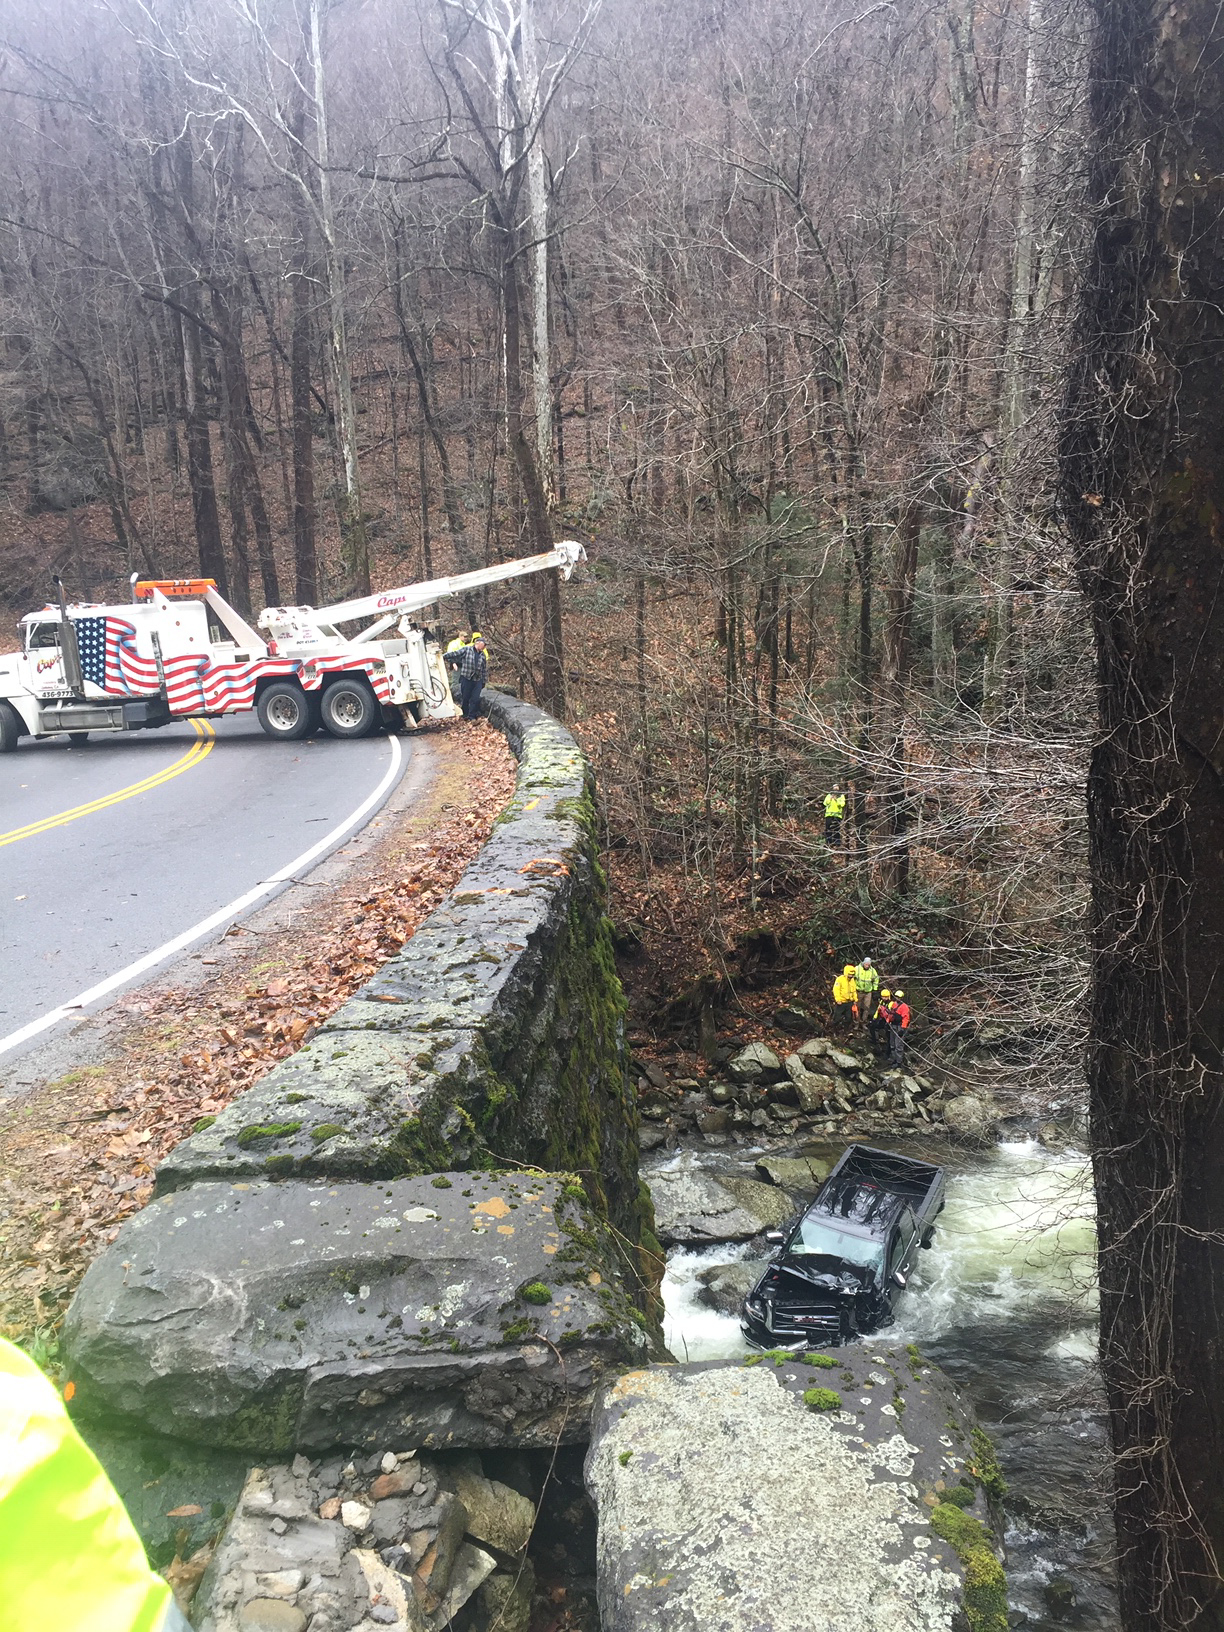 Crash scene (From: Great Smoky Mountains National Park)